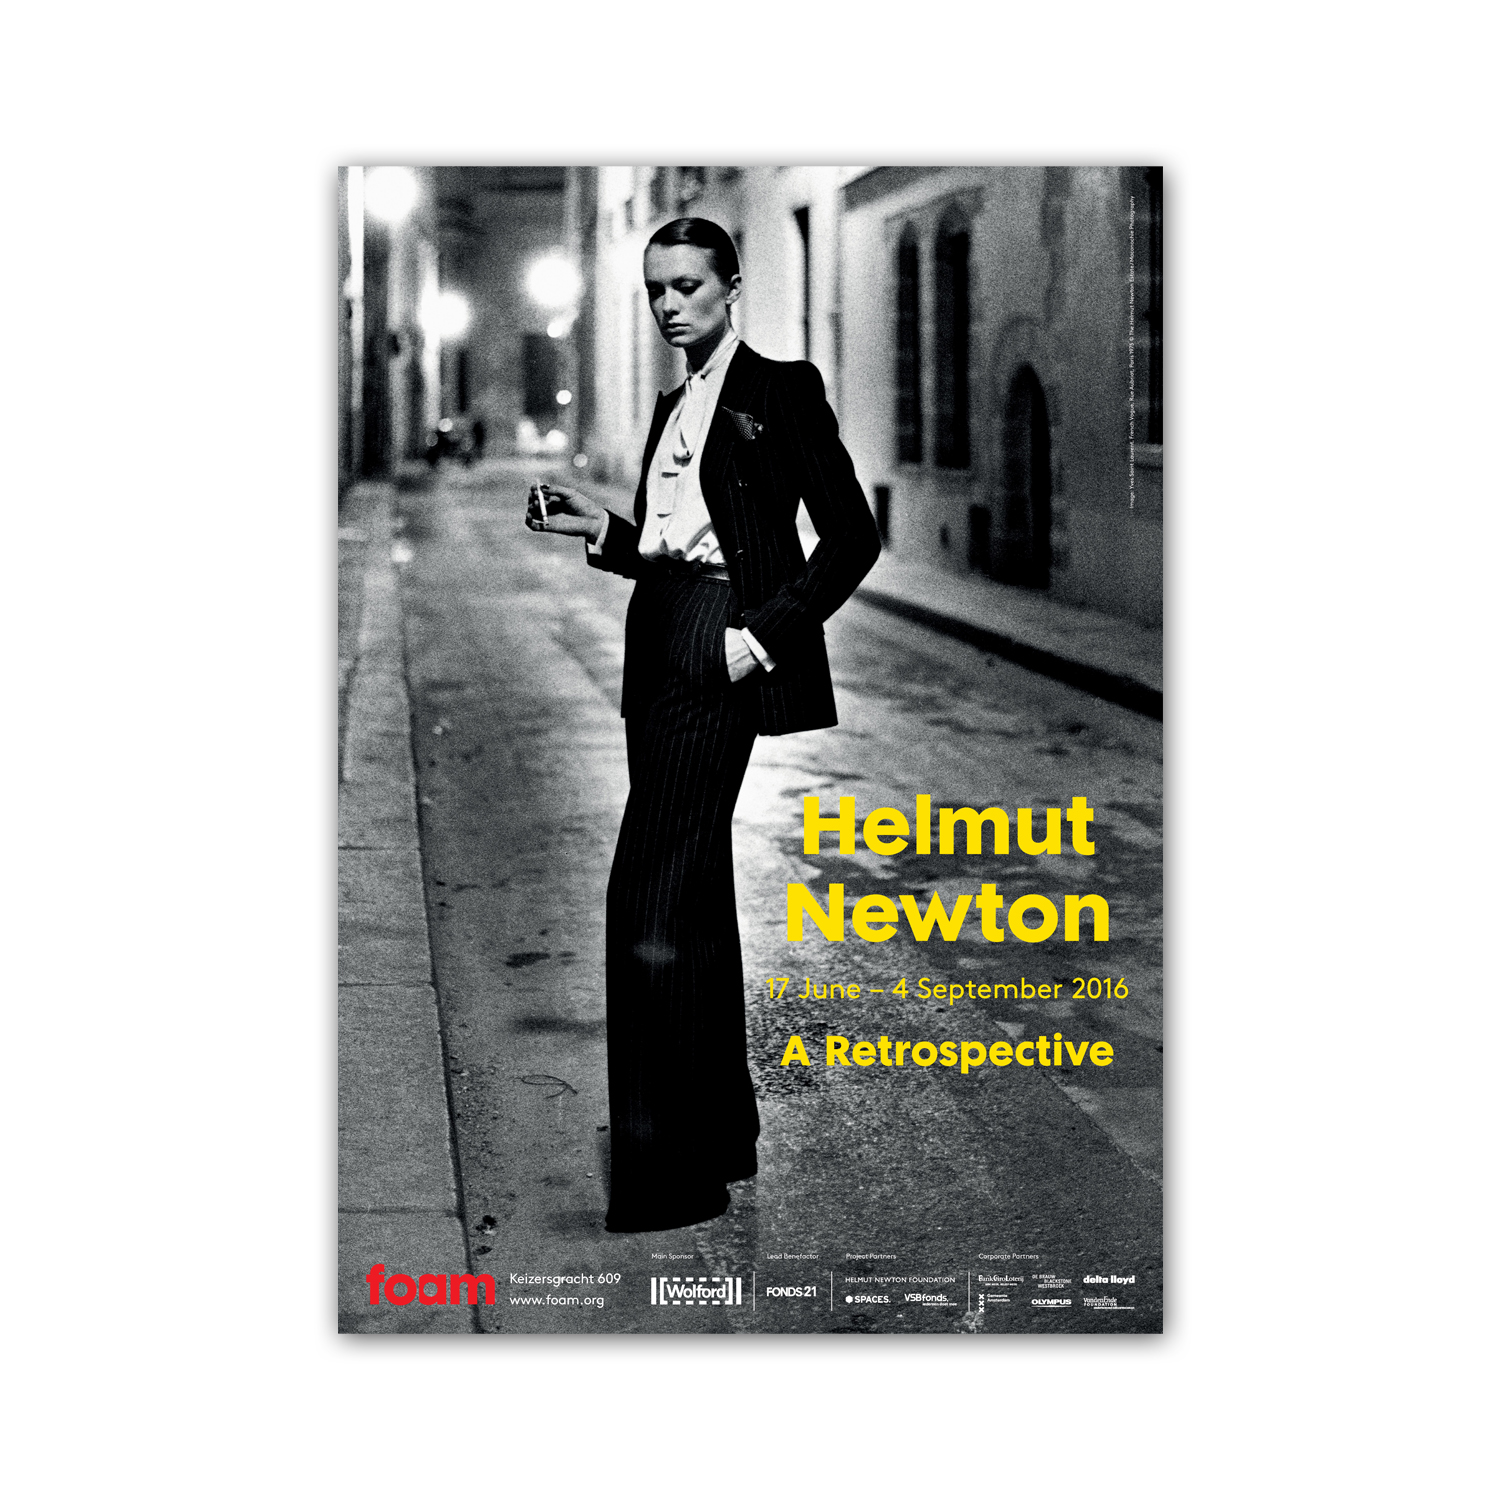 A Retrospective (2016) by Helmut Newton